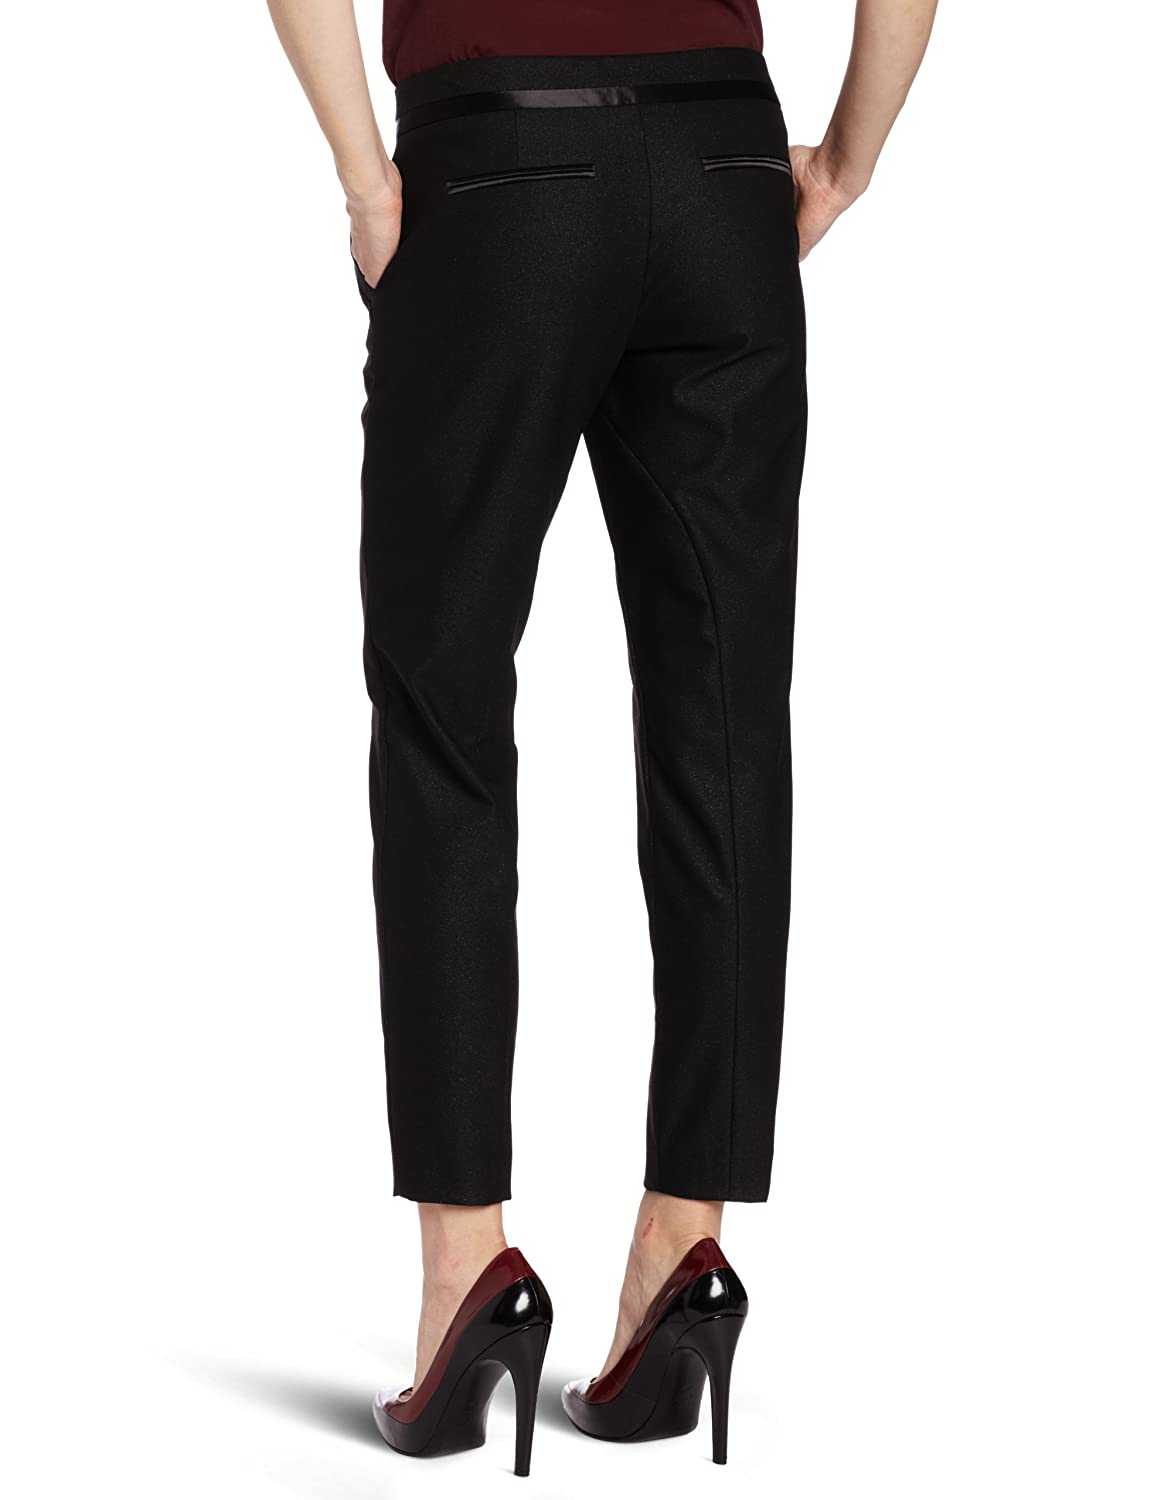 Ted Baker Womens Enel Sparkle Panel Pant Ted Baker London Women/'s Collection WA2W-GT50-ENEL